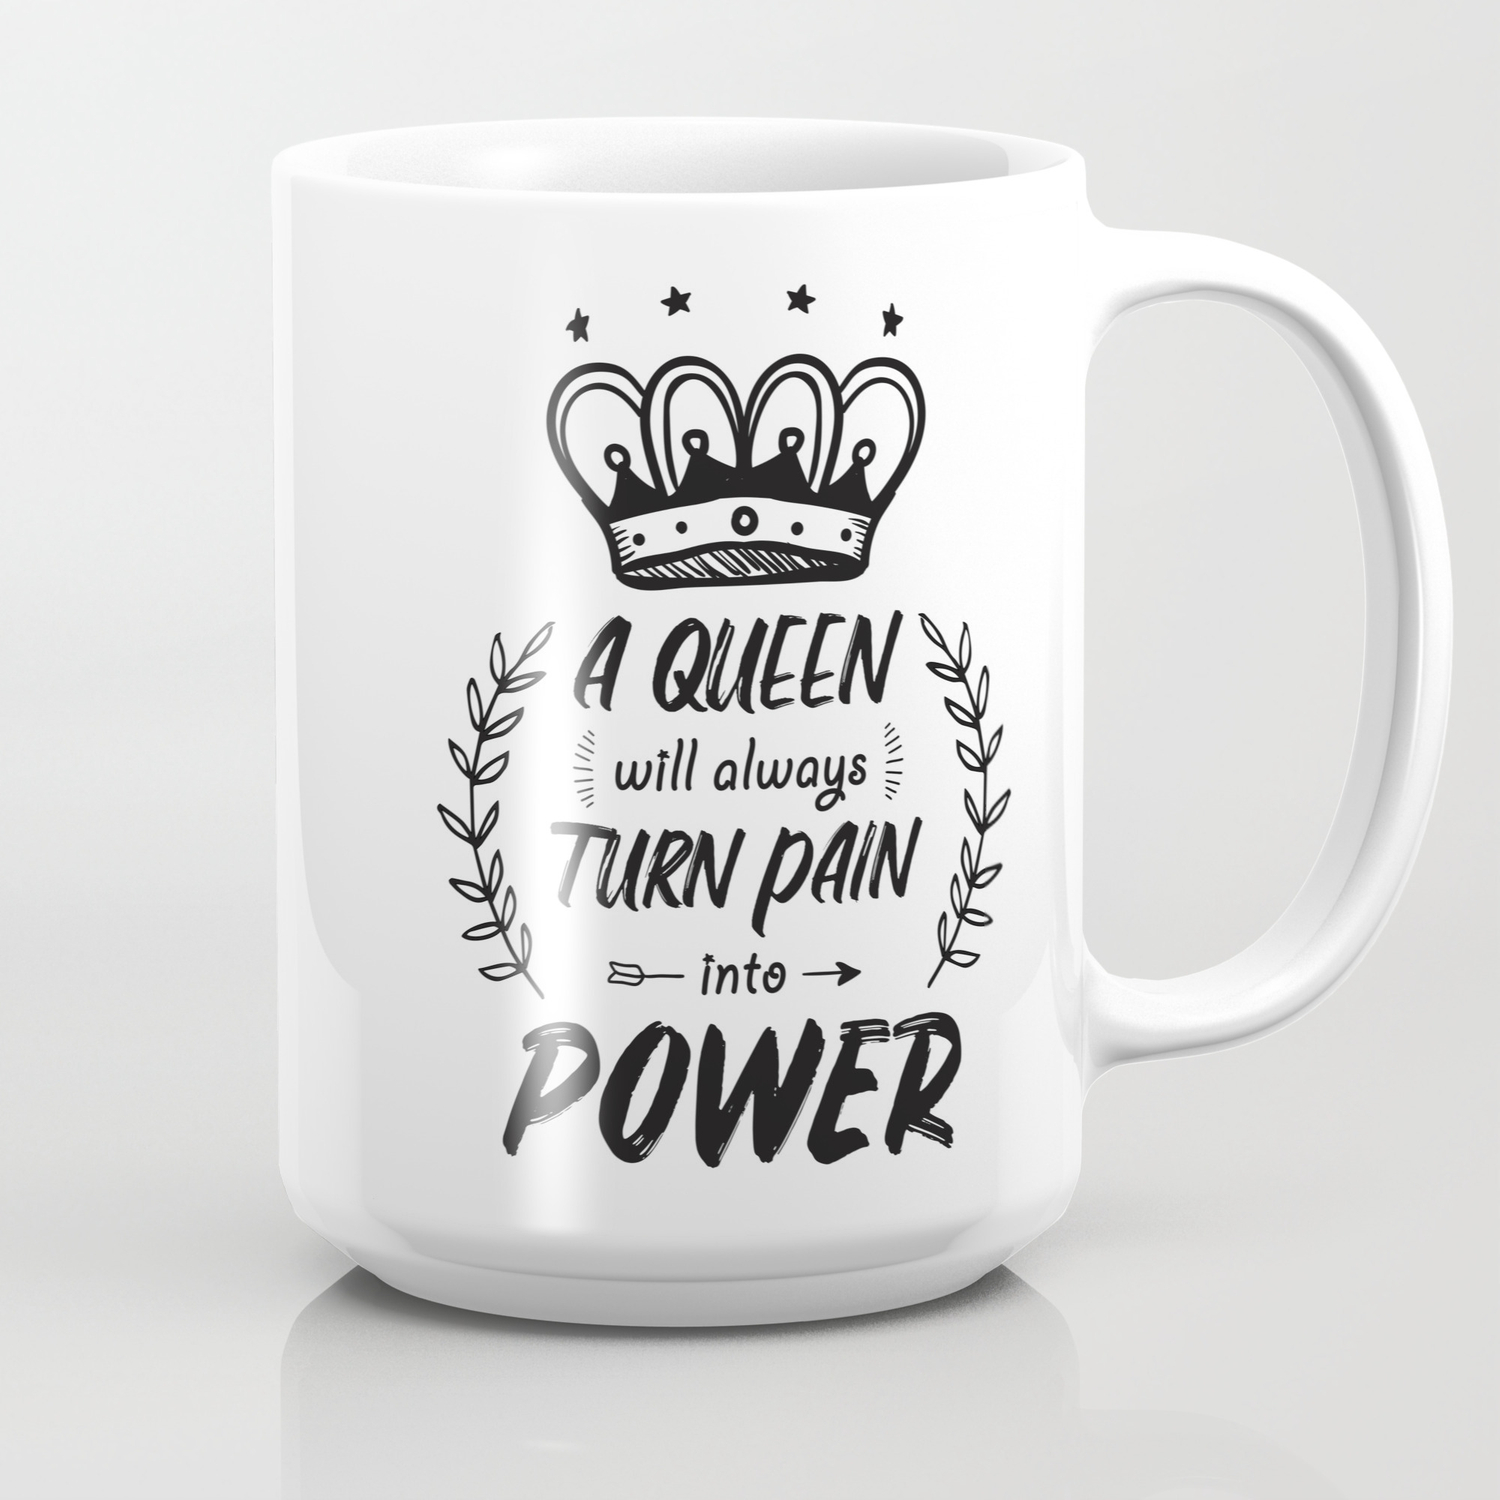 strong encouraging quotes for women queen power coffee mug by kick